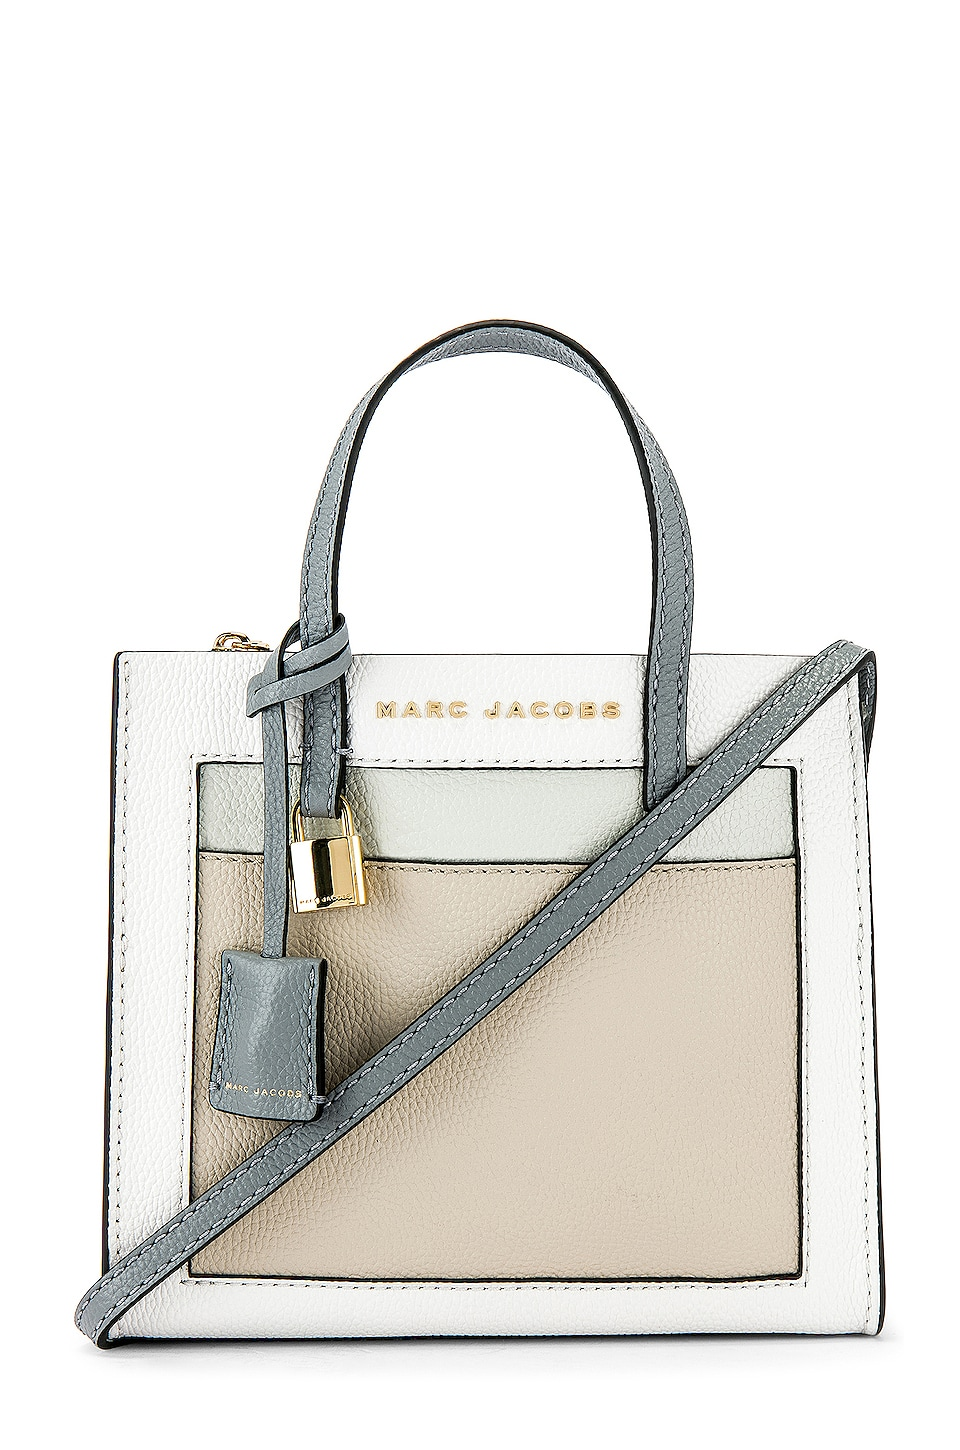 Marc Jacobs Mini Grind Tote in Moon White Multi